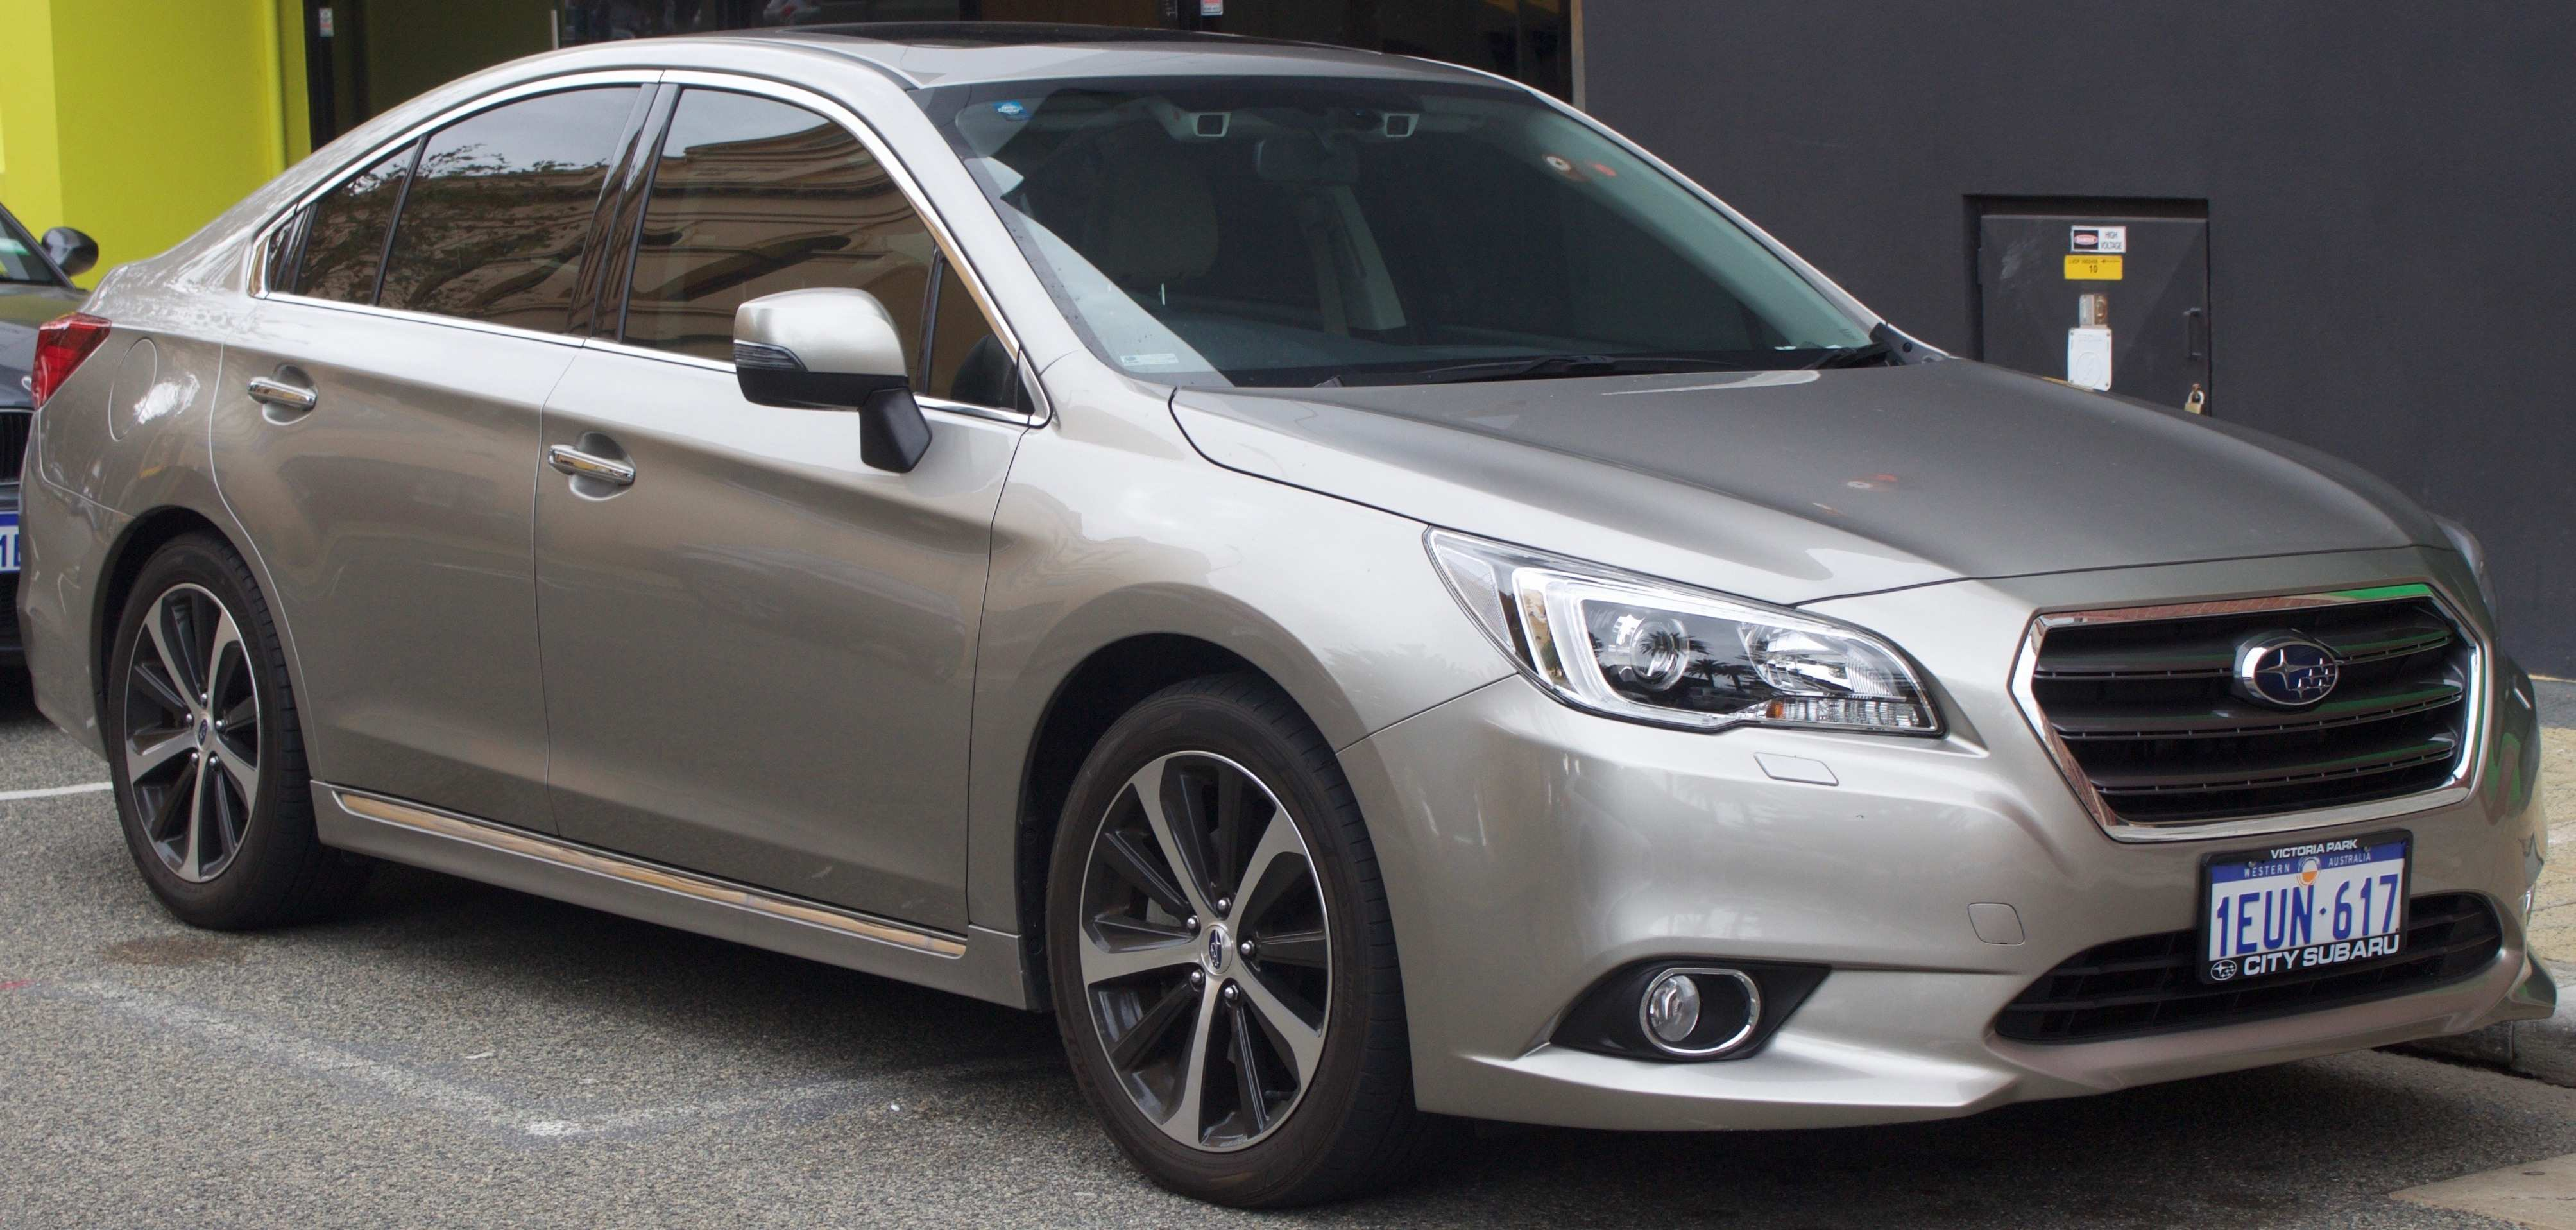 56 New Subaru Legacy Gt 2019 Photos